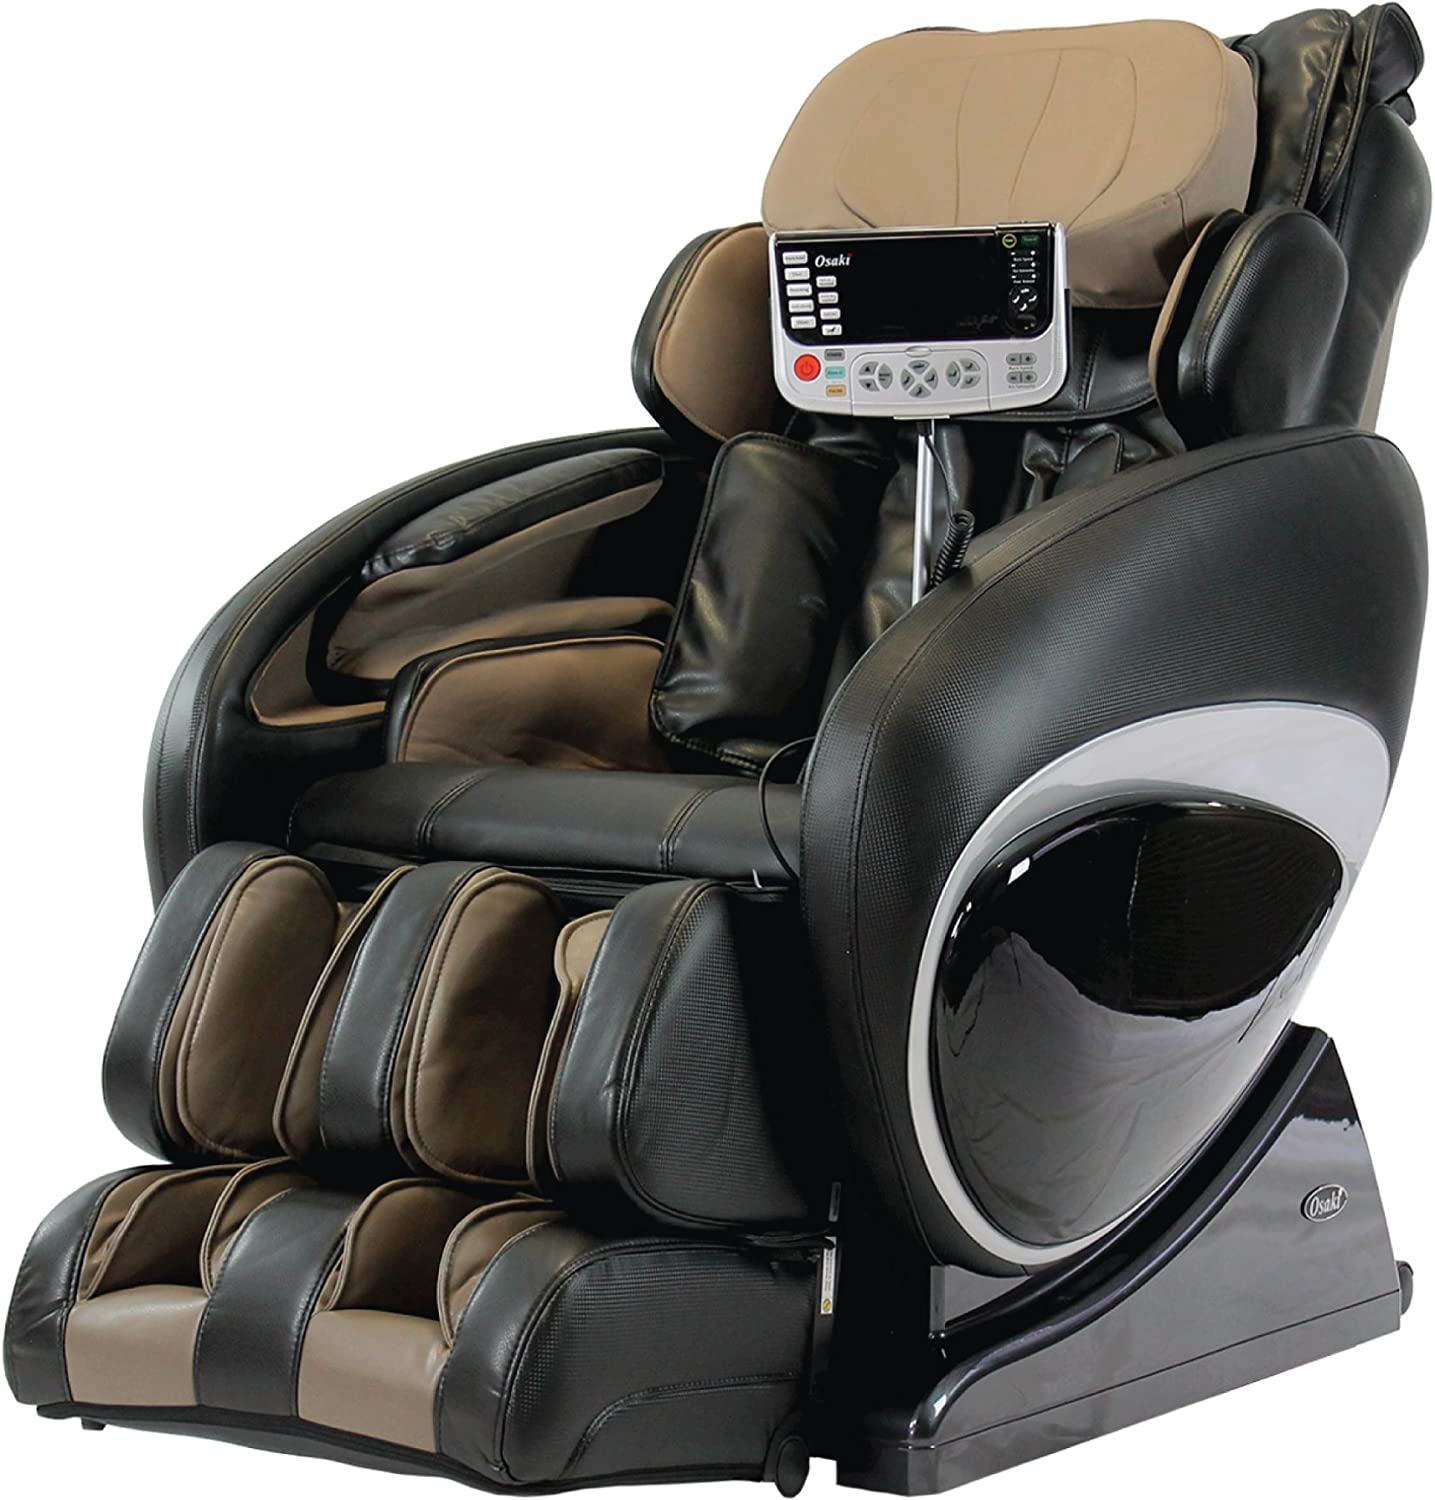 [Top 10] Best Zero Gravity Massage Chair in 2021 - [Review & Guide]